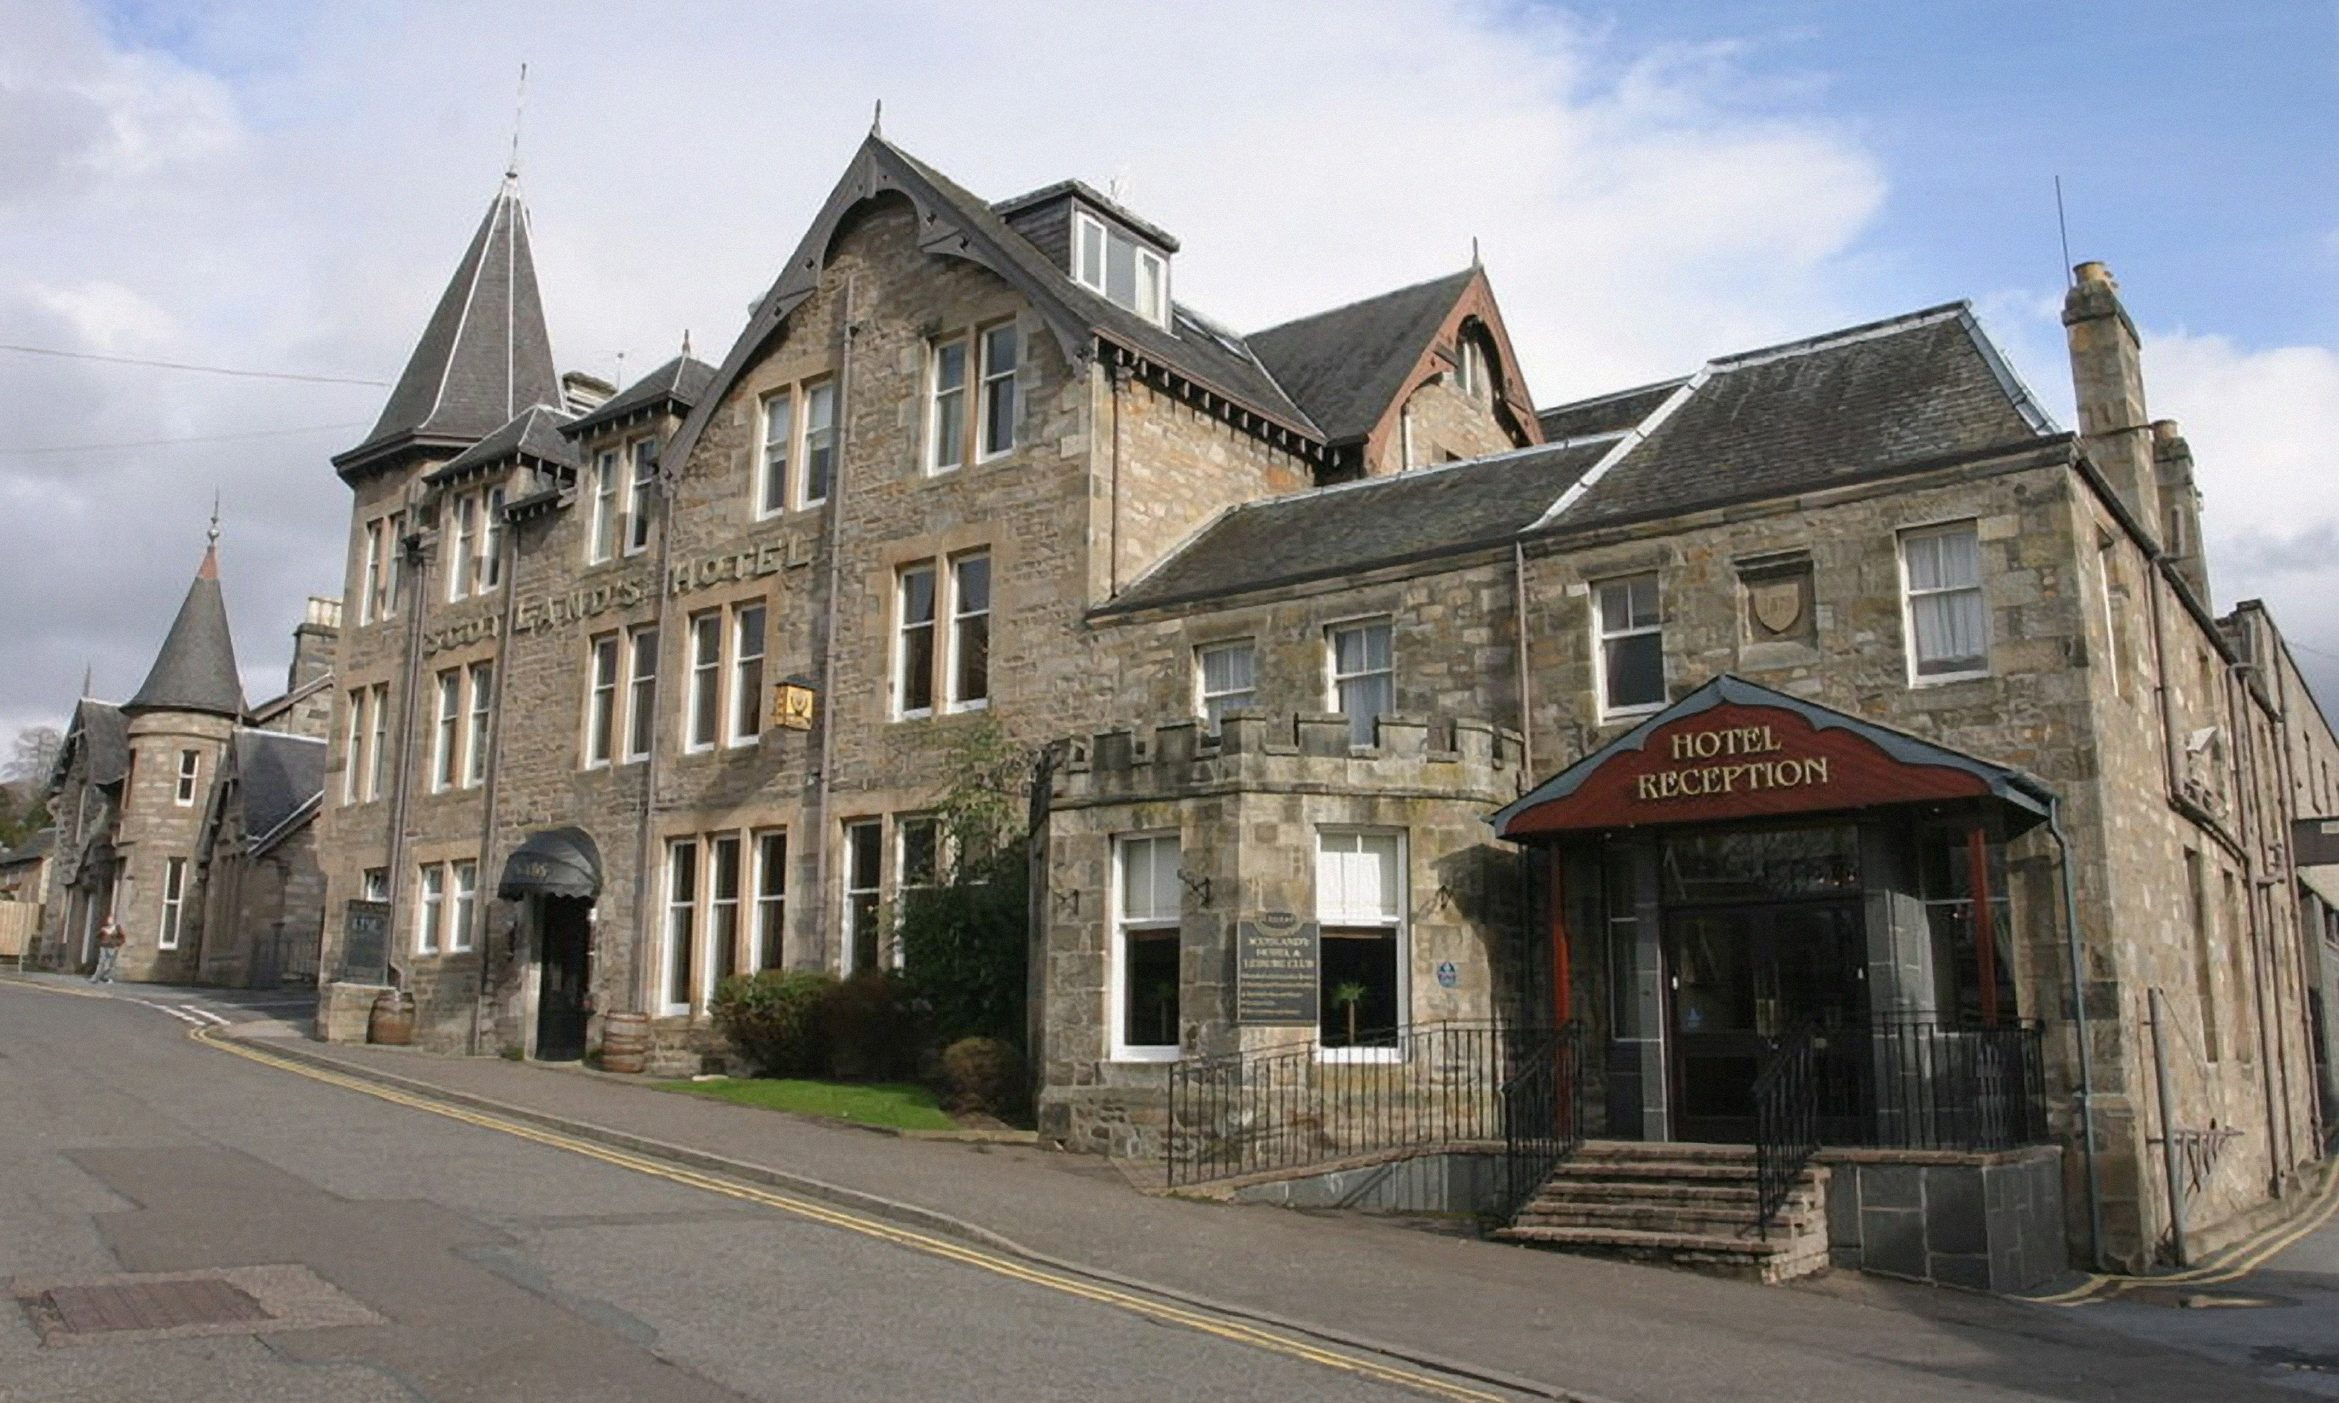 Scotland's Hotel in Pitlochry, which objected to the housing plan